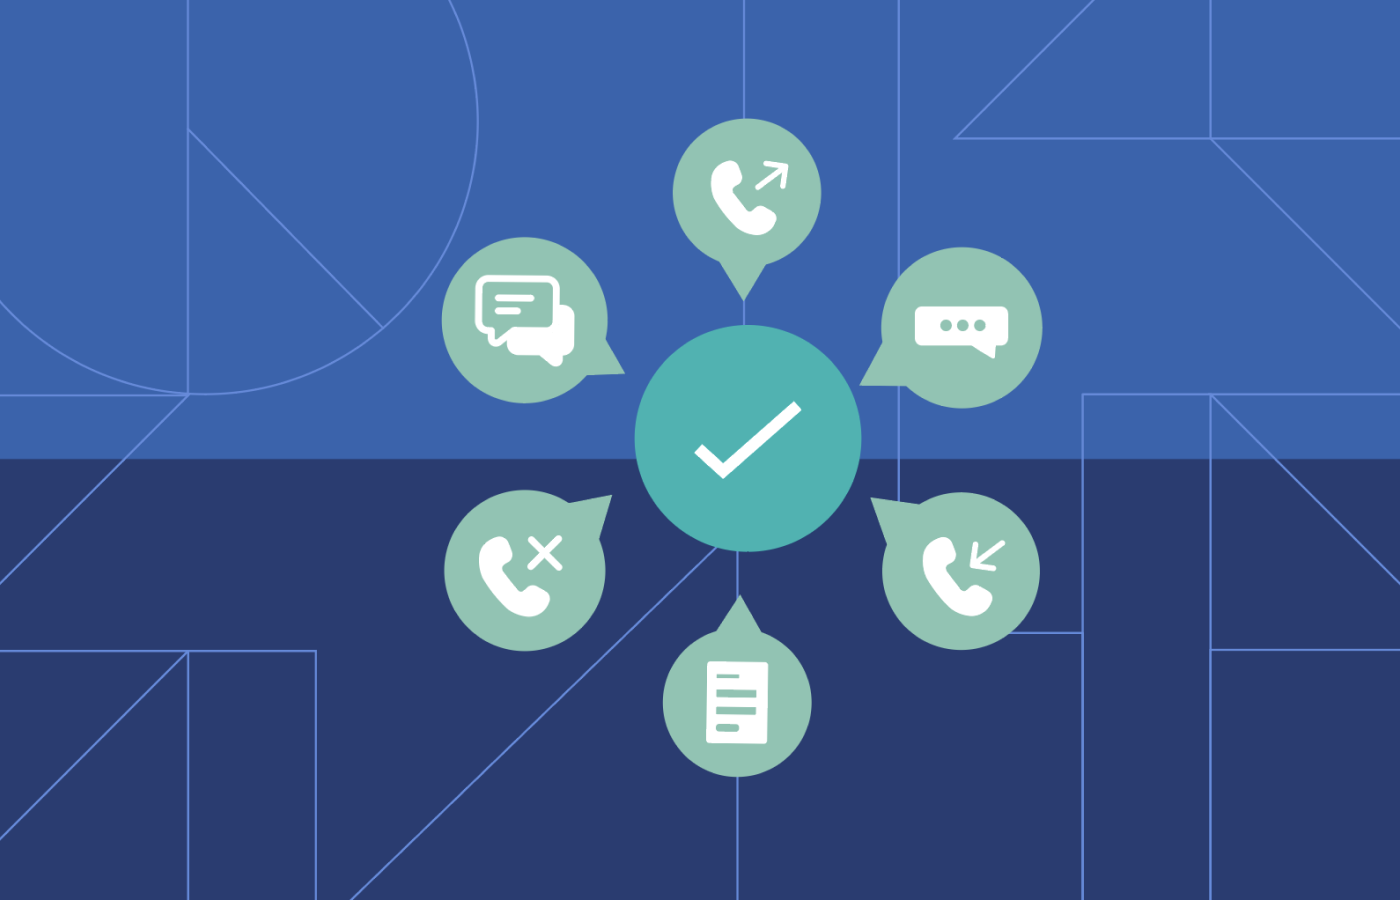 Here's a visual look at how you can consolidate all your incoming and outgoing customer communications in one place.